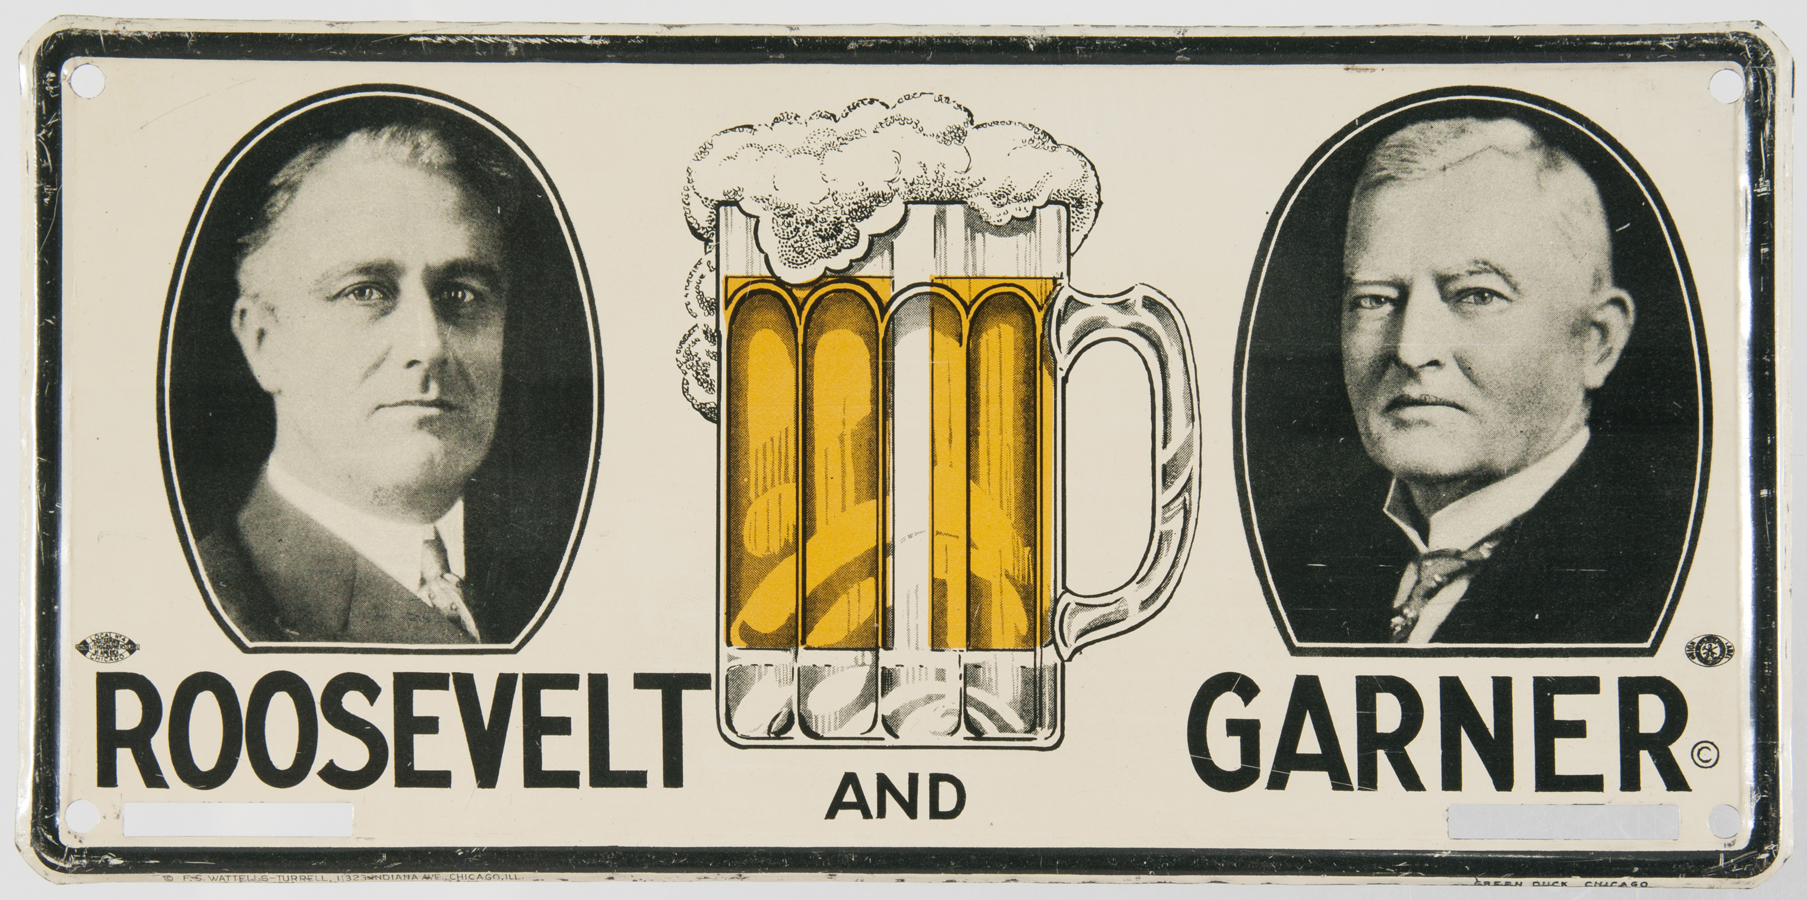 A rare Roosevelt/Garner license plate attachment from Mussells personal collection.